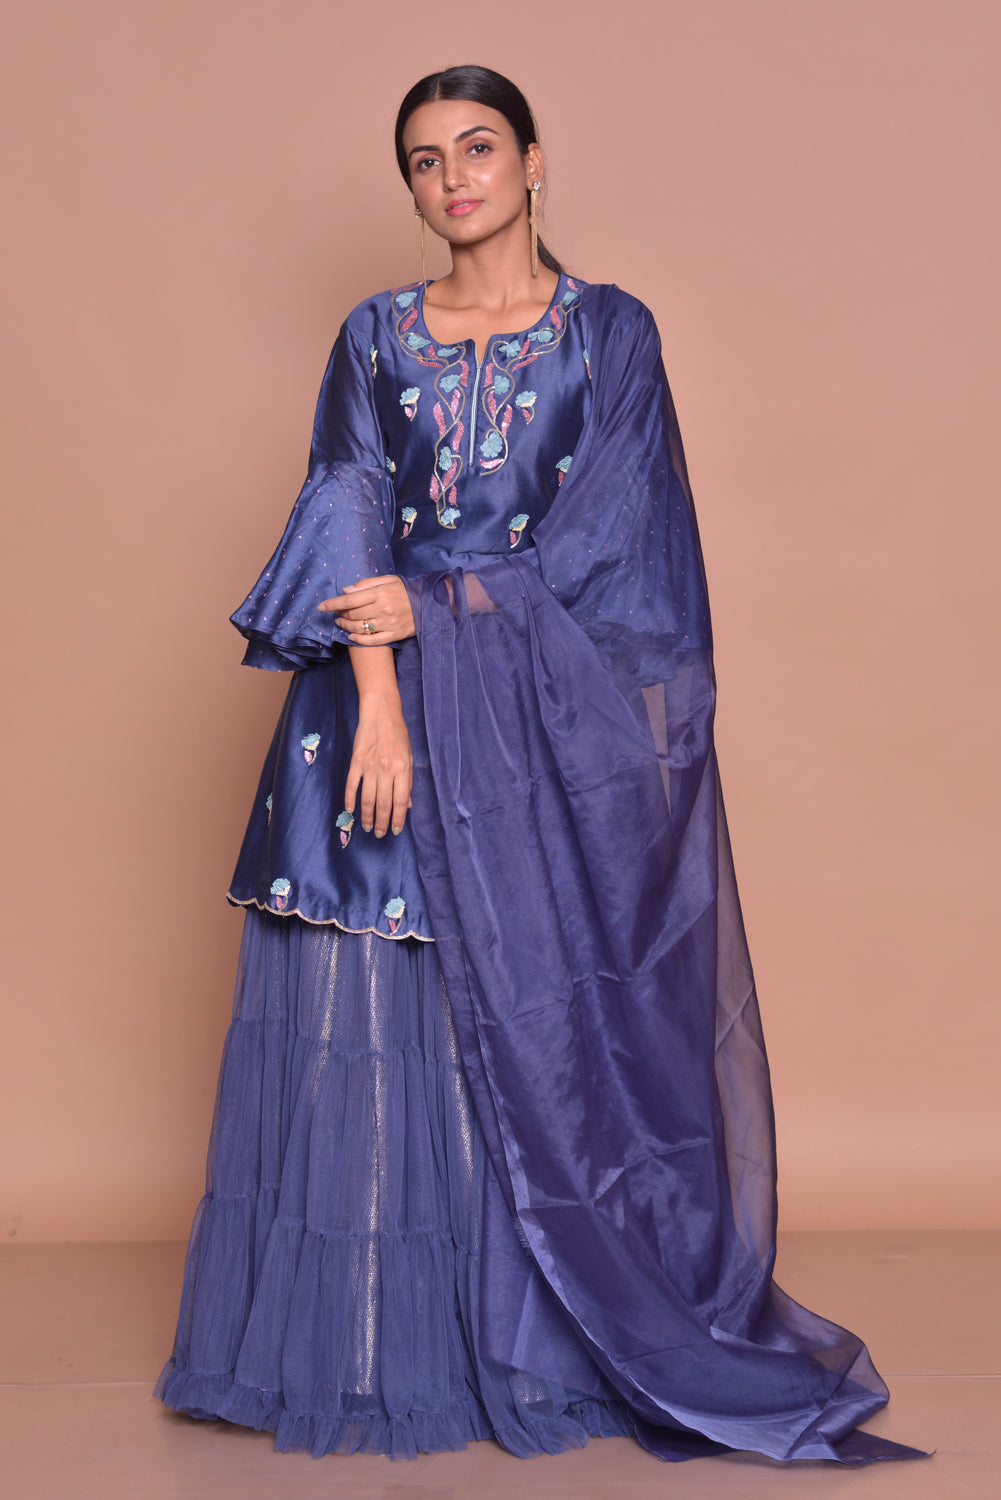 Shop beautiful royal blue embroidered kurta online in USA with skirt and dupatta. Flaunt Indian fashion with exquisite designer suits, Anarkali suits, sharara suits from Pure Elegance Indian cloth store in USA. -front